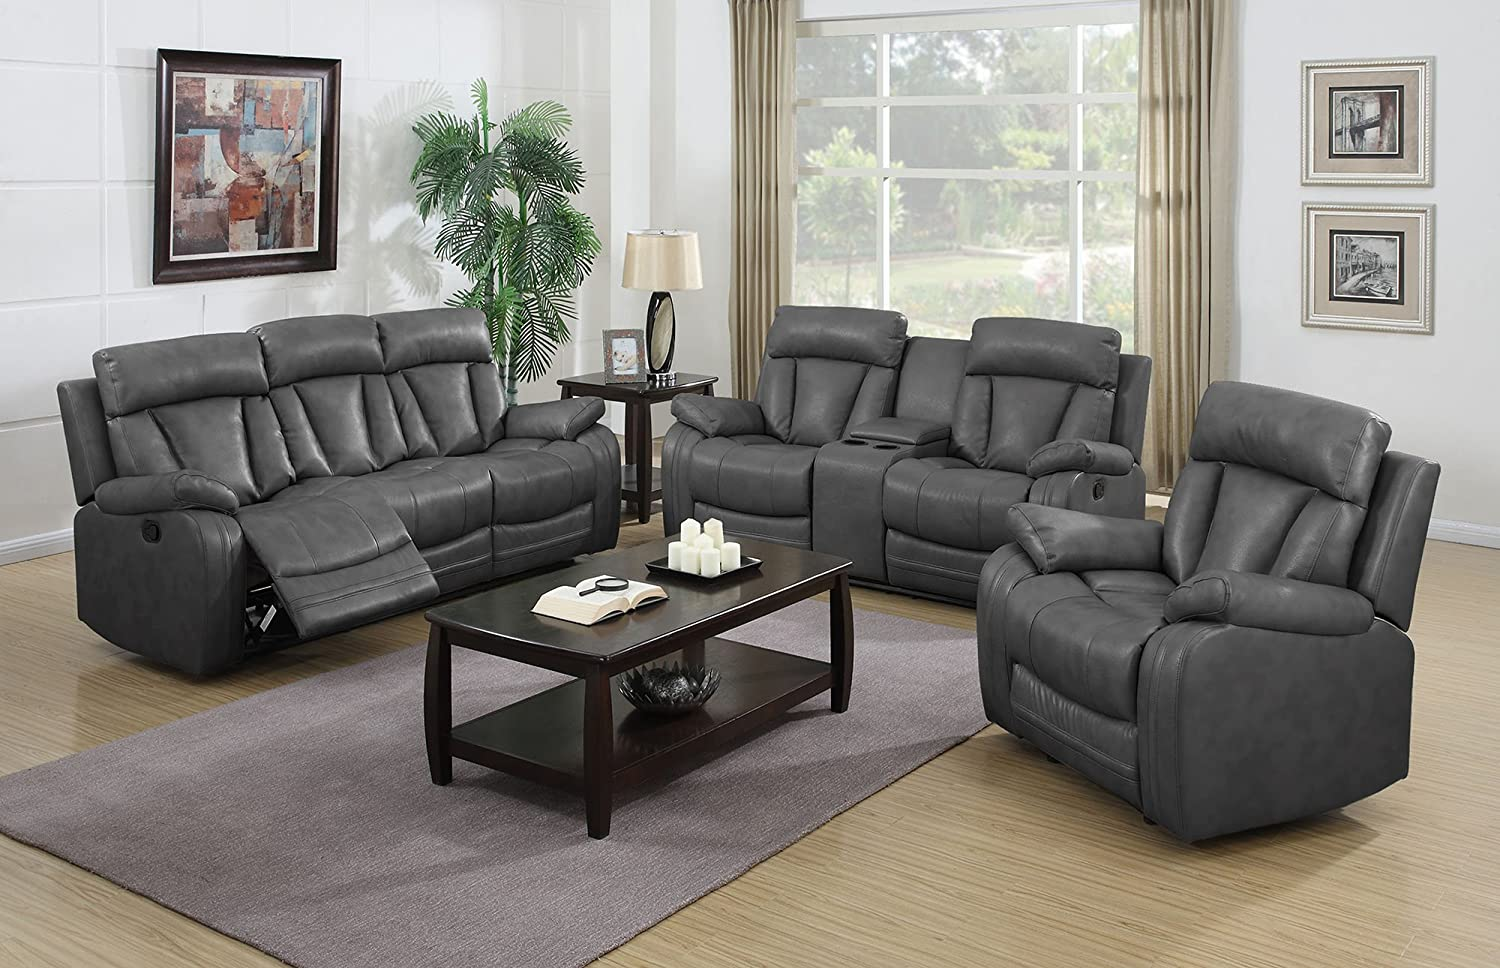 Amazon.com: NHI Express Benjamin Motion Sofa Set (1 Pack ...